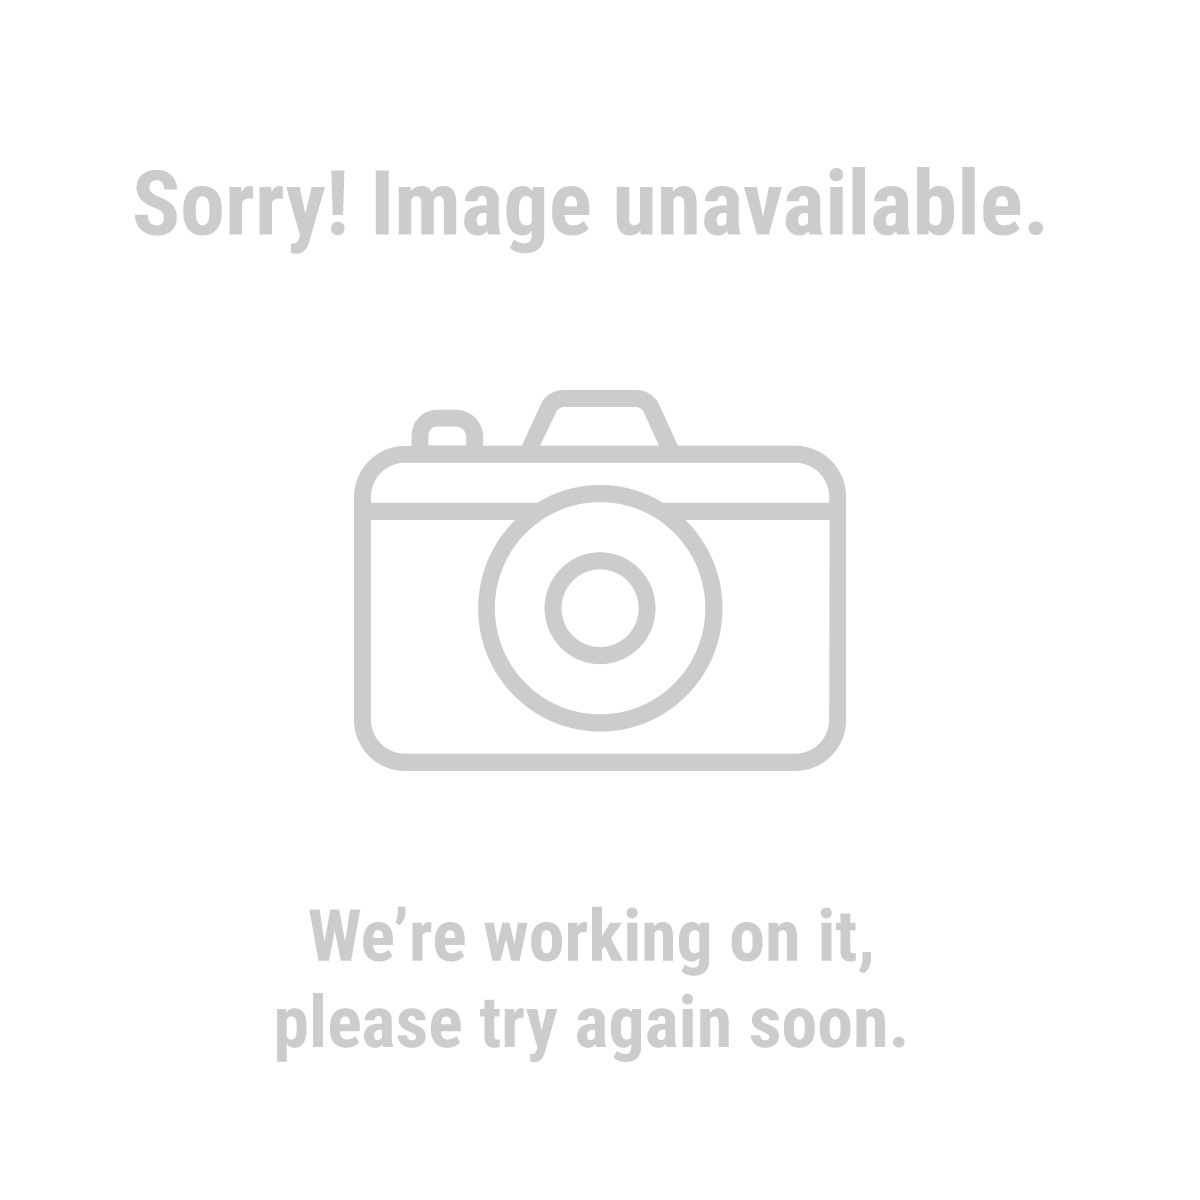 HARDY 4468 Rubber Blasting Gloves